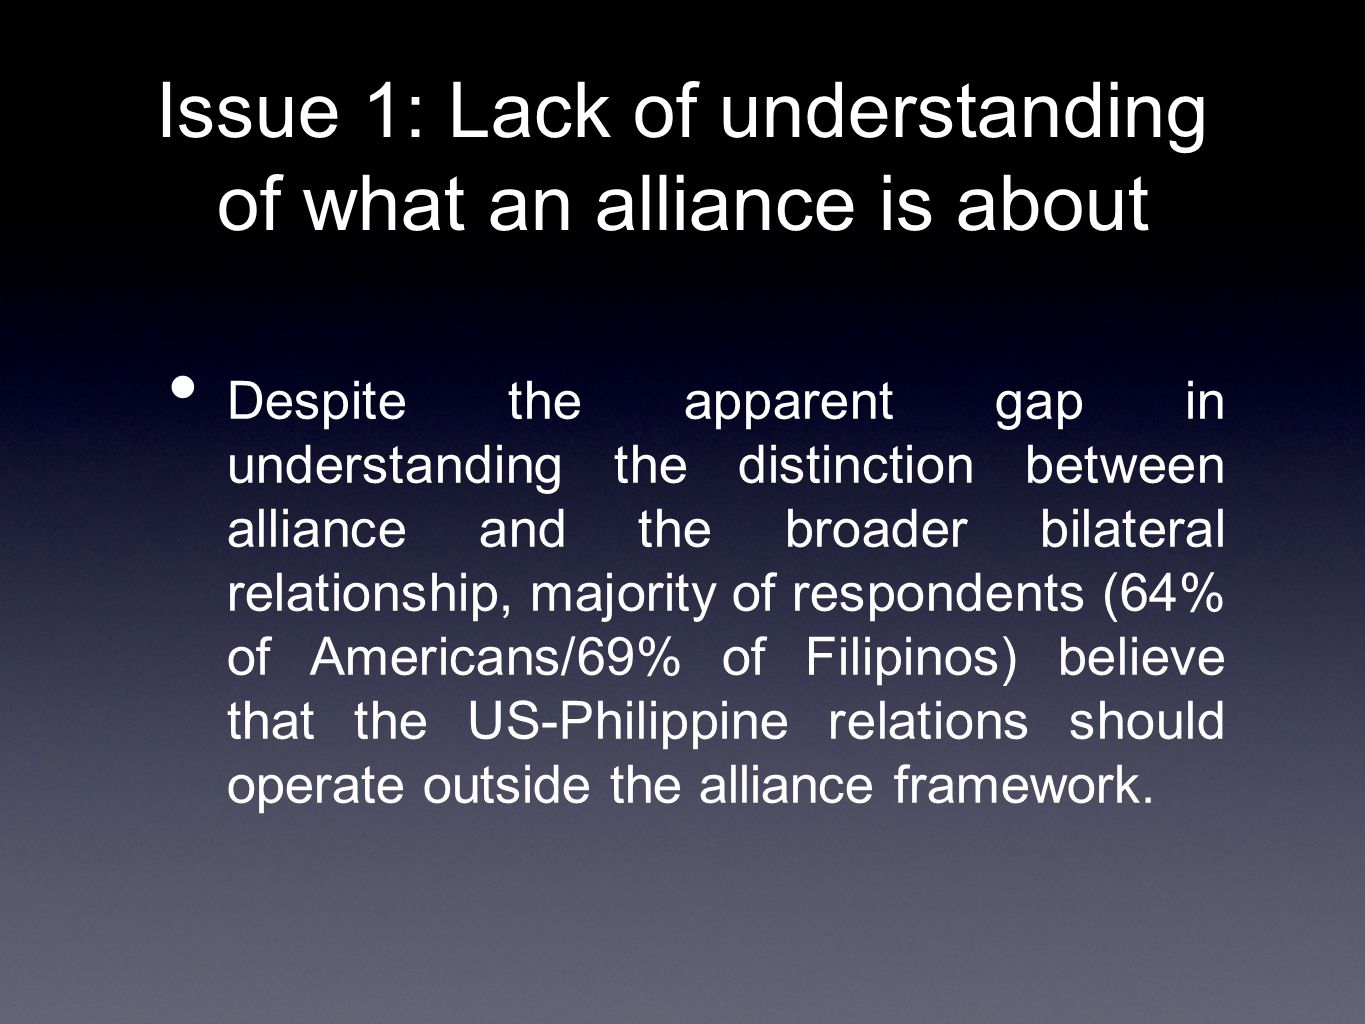 Issue 1: Lack of understanding of what an alliance is about Despite the apparent gap in understanding the distinction between alliance and the broader bilateral relationship, majority of respondents (64% of Americans/69% of Filipinos) believe that the US-Philippine relations should operate outside the alliance framework.